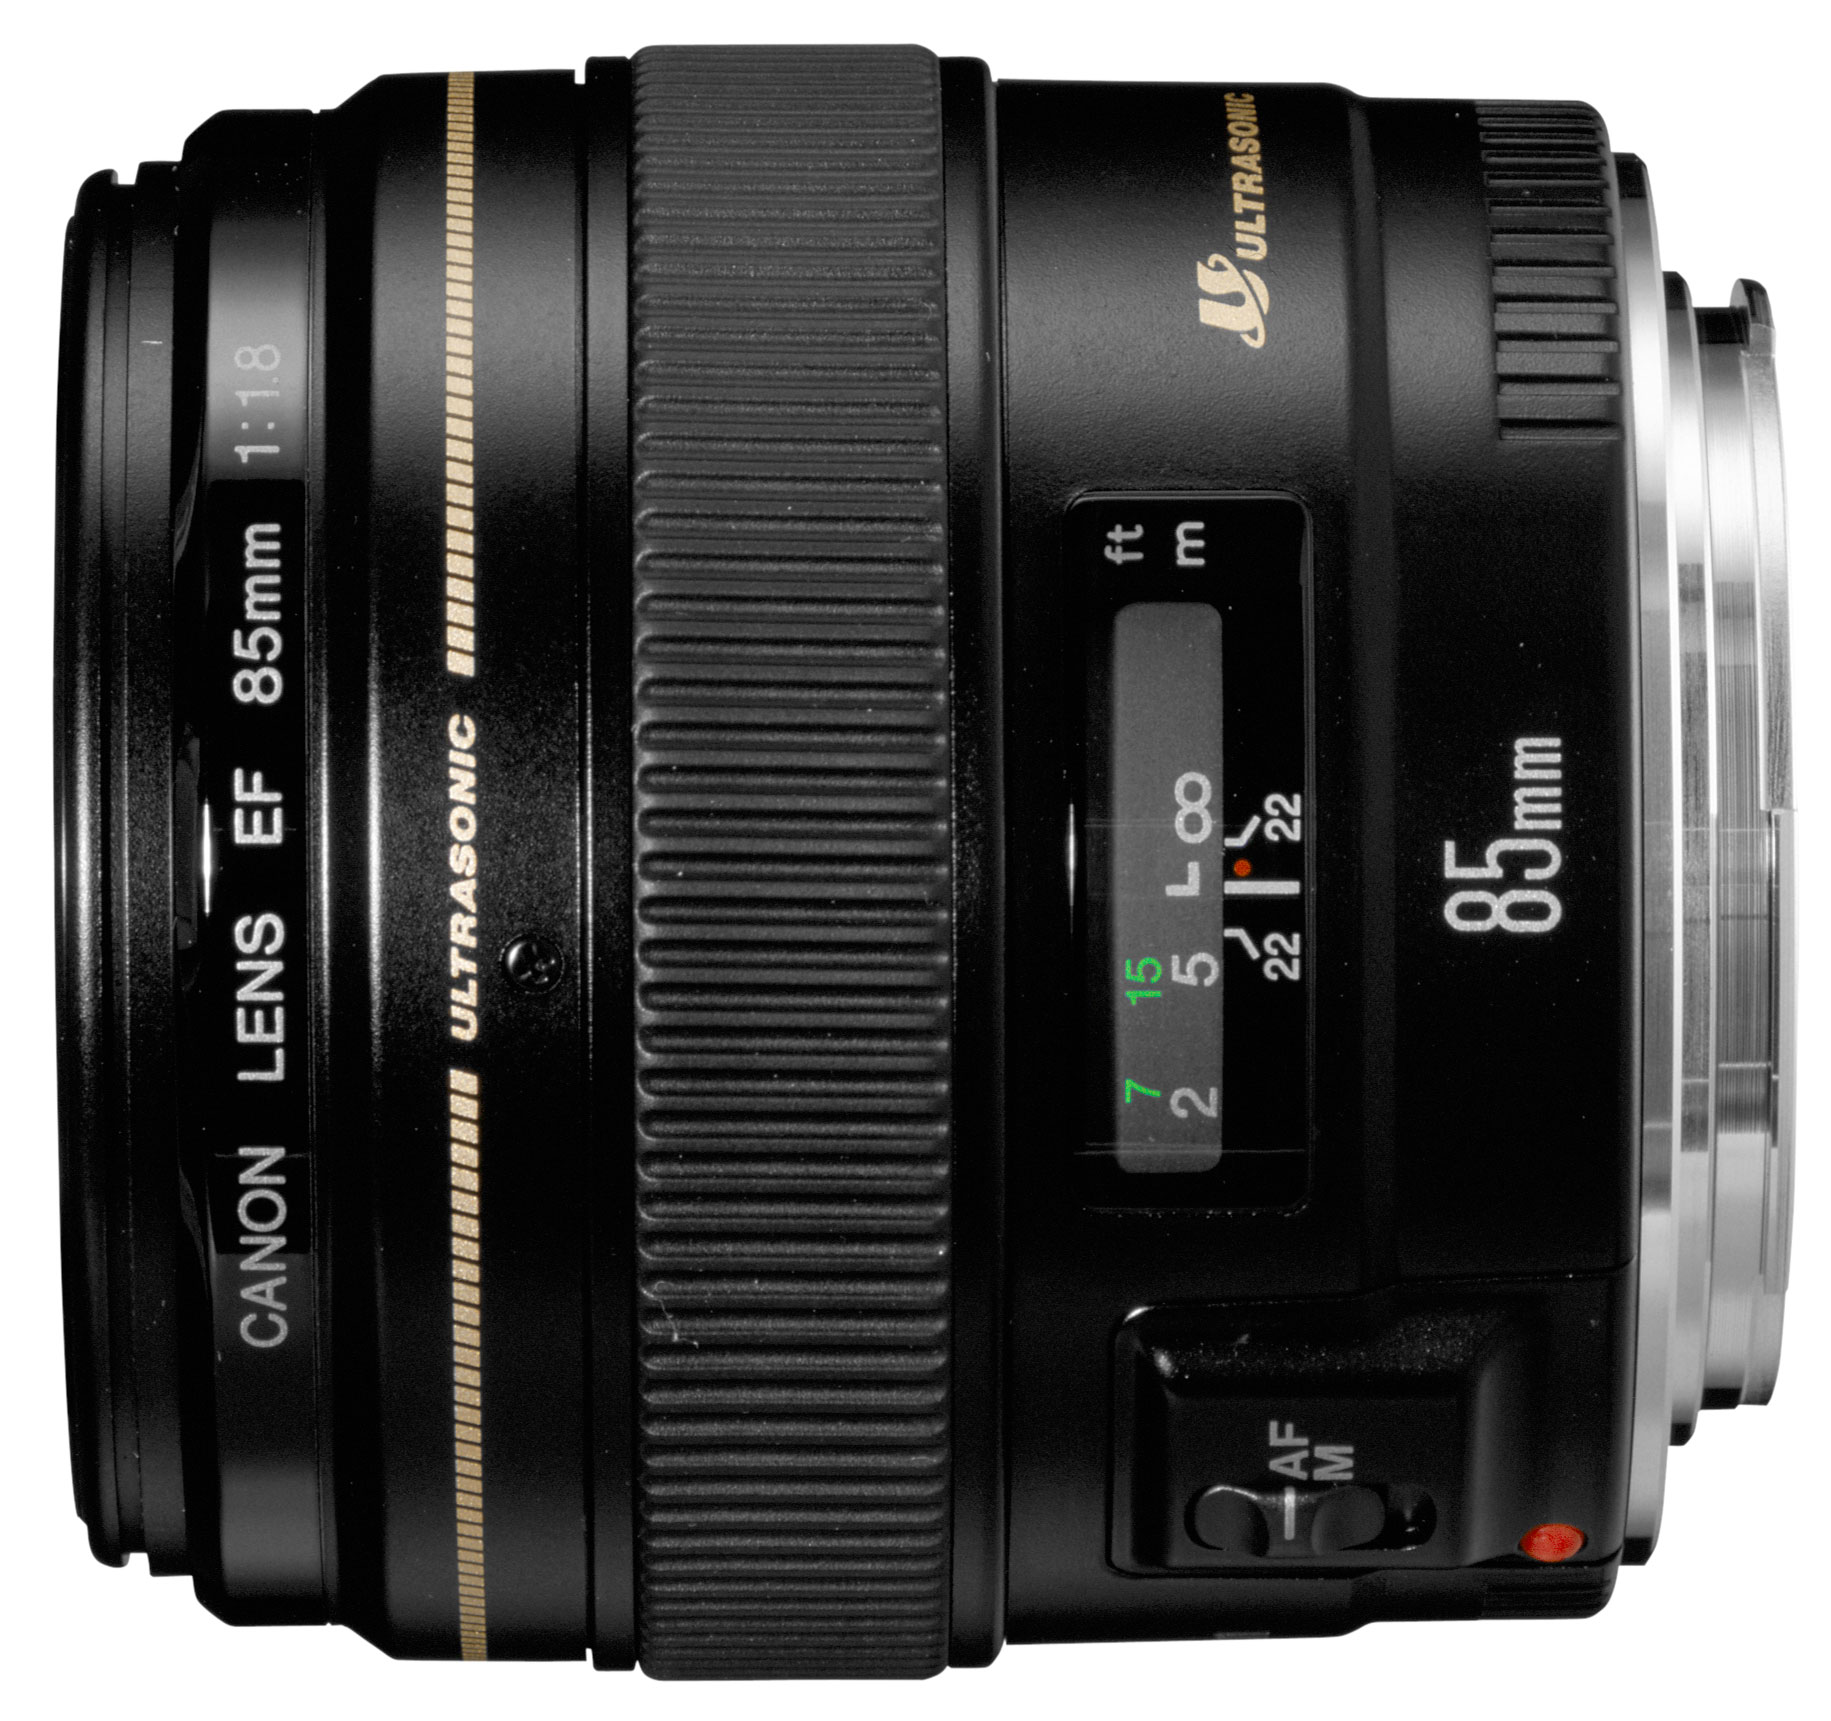 Canon EF 85mm f1.8 USM  sc 1 st  Cameralabs & Best Canon Portrait Lenses - | Cameralabs azcodes.com